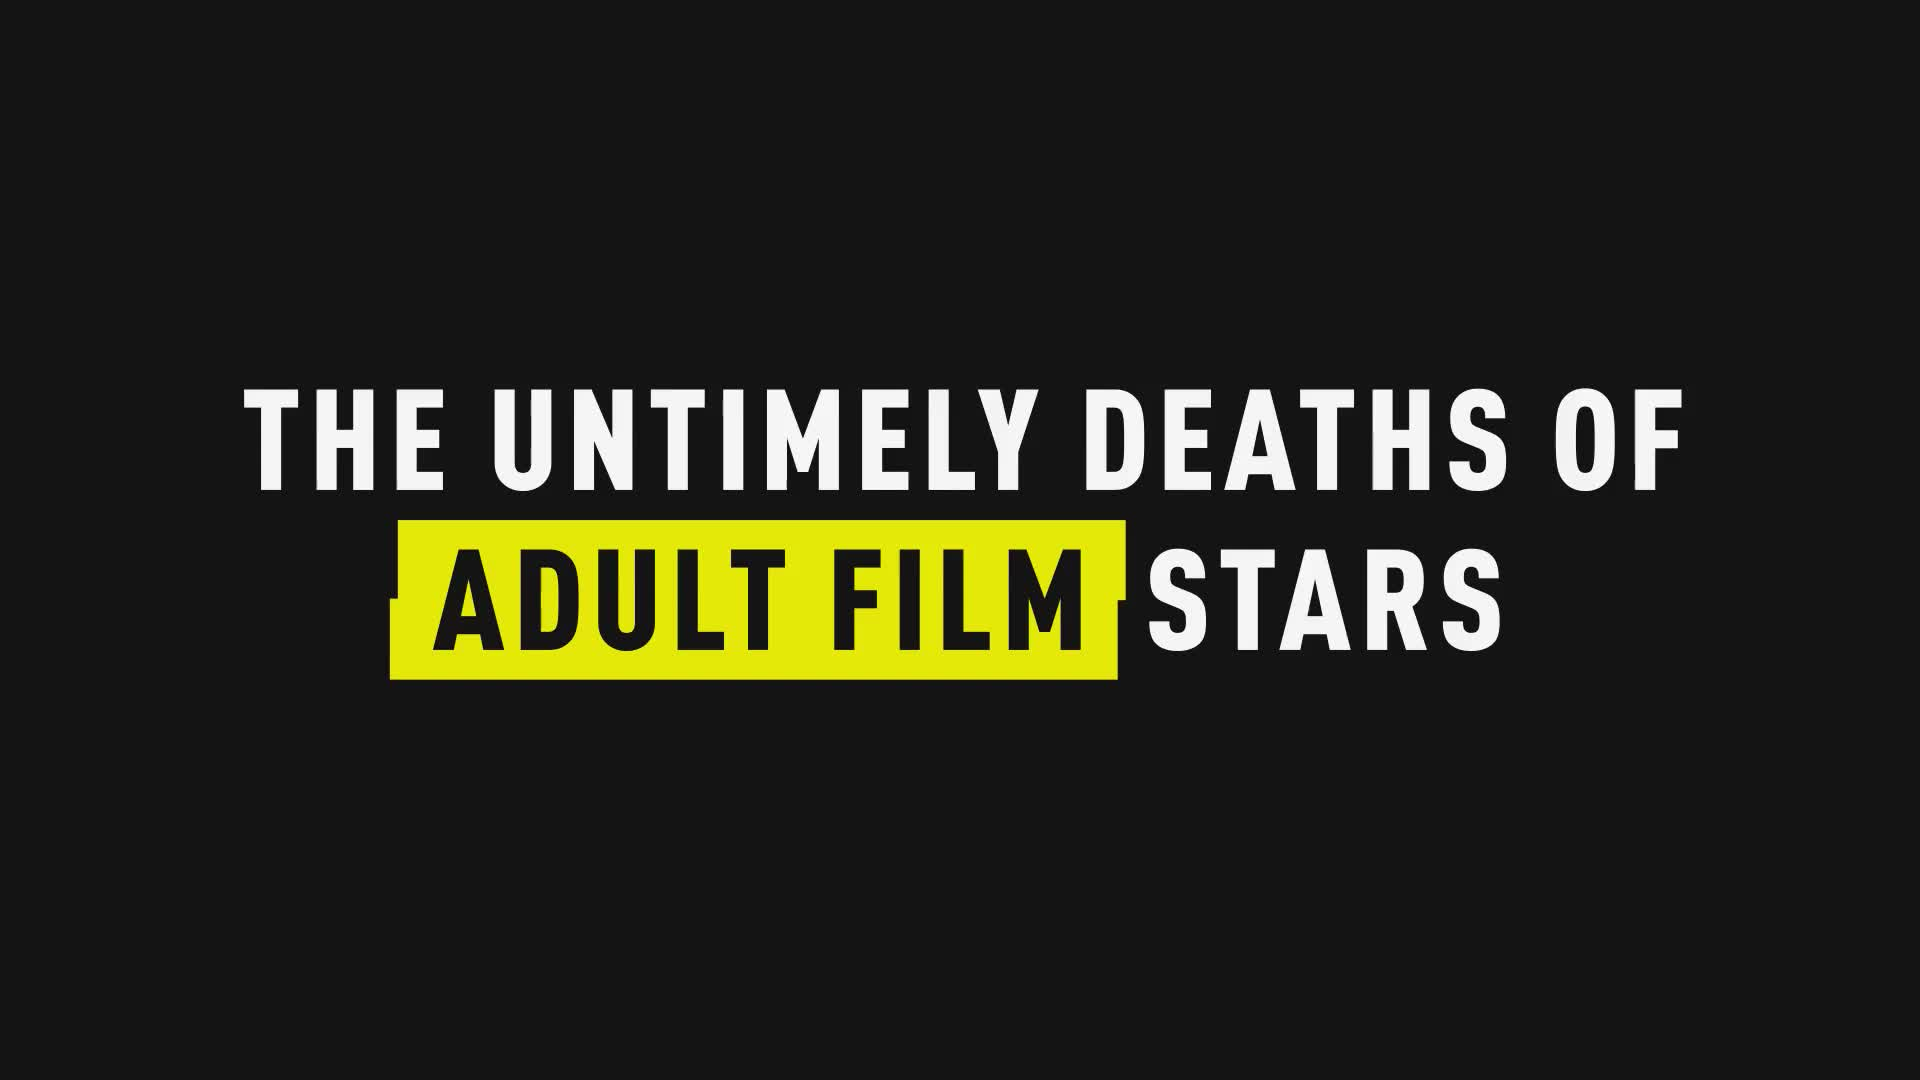 The Untimely Deaths of Adult Film Stars Shakes Porn Industry